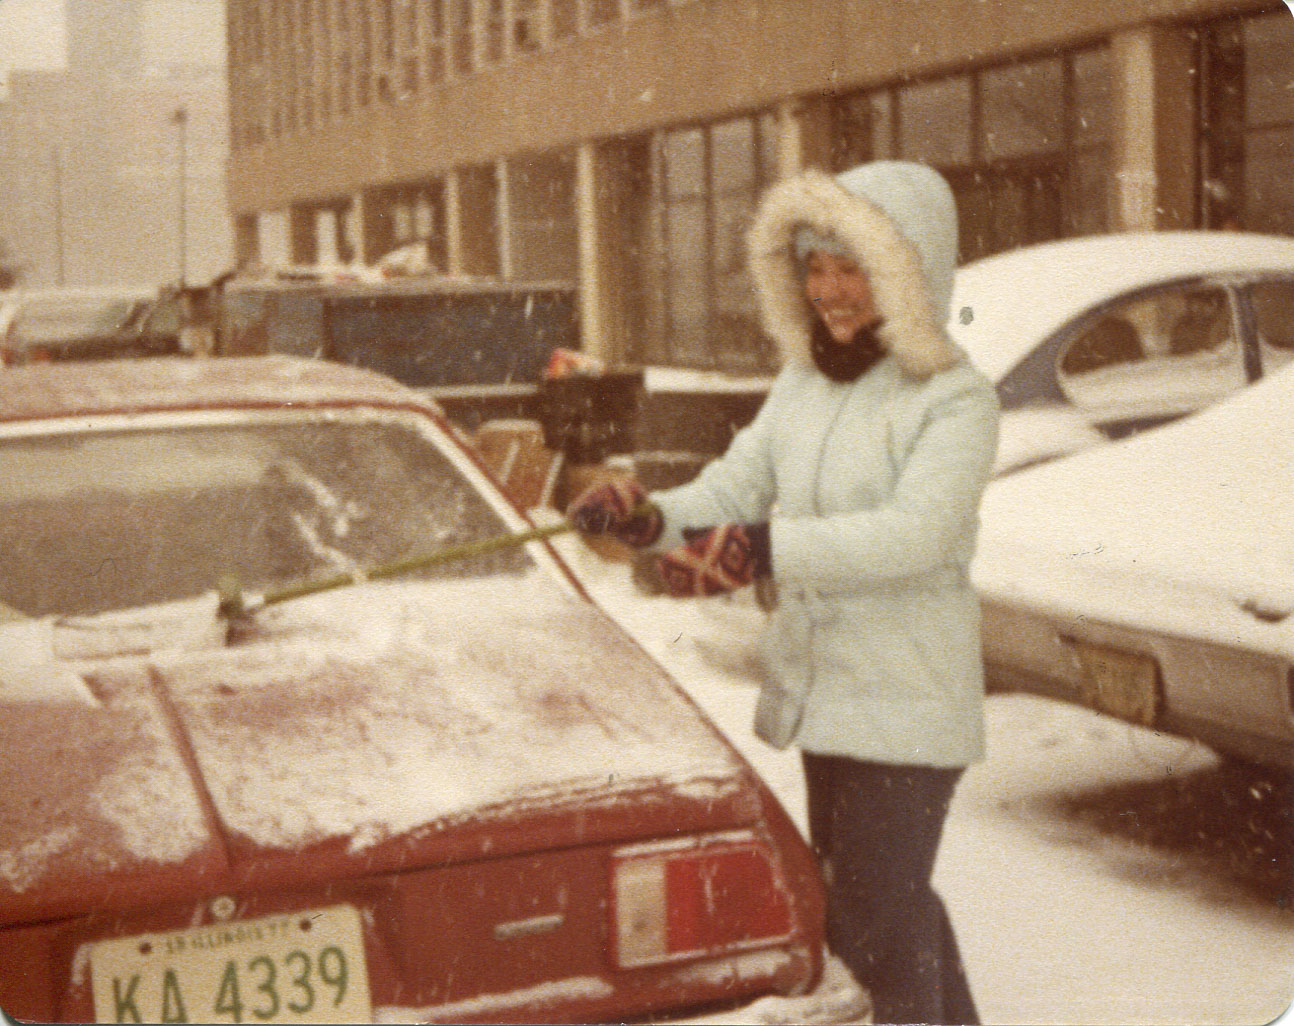 "Photo of Etta McKenna, 1977. Taken in Jan 1978 in the parking lot of 1926 W Harrison. First snow in Chicago winter '78,  Taken by ""my friend, Agnes Clement, while cleaning her car.""  Pictured: ""myself cleaning the car"" [One woman in cleaning snow off a car]  Notes from Sarah Carlson, in discussion with McKenna: ""This reminds me of my first snow in Chicago. I was wearing a parka bought from Woolworth's on sale. It was a thin parka so one of the first experiences in the cold. Not since I came to Chicago had I felt how cold is 'cold'! Cleaning my friend's car, a Chevy Monza.   Any views, findings, conclusions, or recommendations expressed in this story do not necessarily represent those of the National Endowment for the Humanities. [Copyright] Field Museum of Natural History - CC BY-NC"